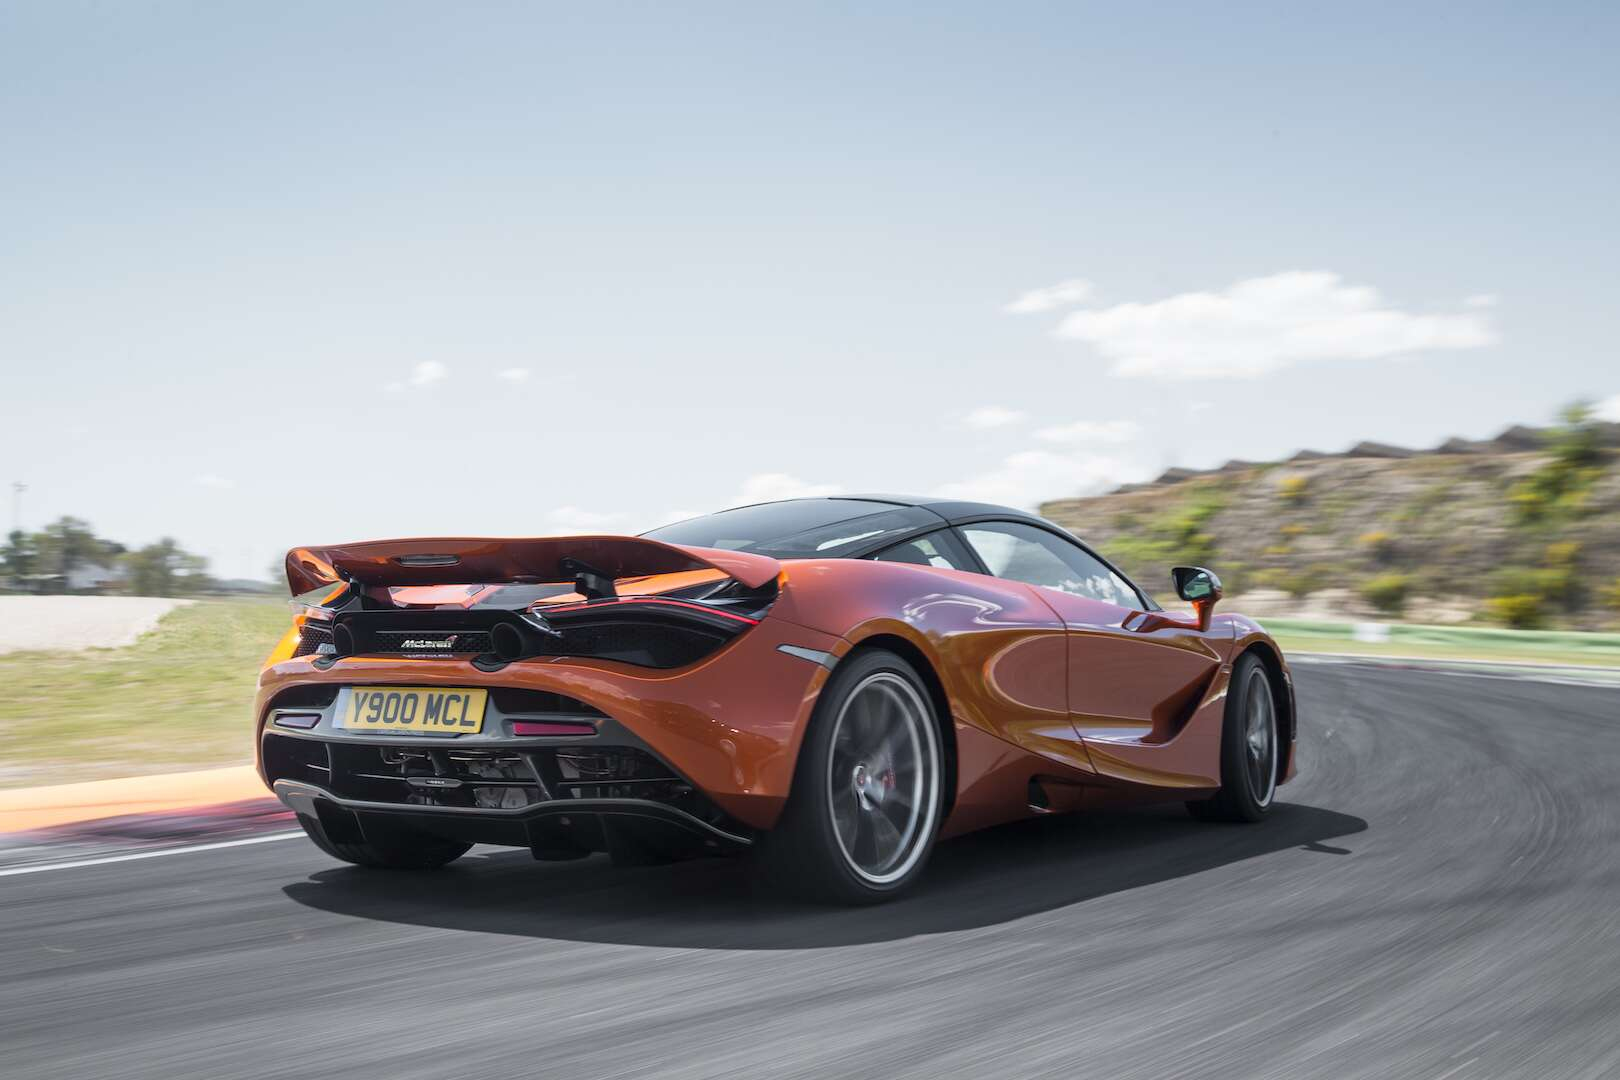 2018 mclaren 720s 7 first impressions straight from rome the drive. Black Bedroom Furniture Sets. Home Design Ideas